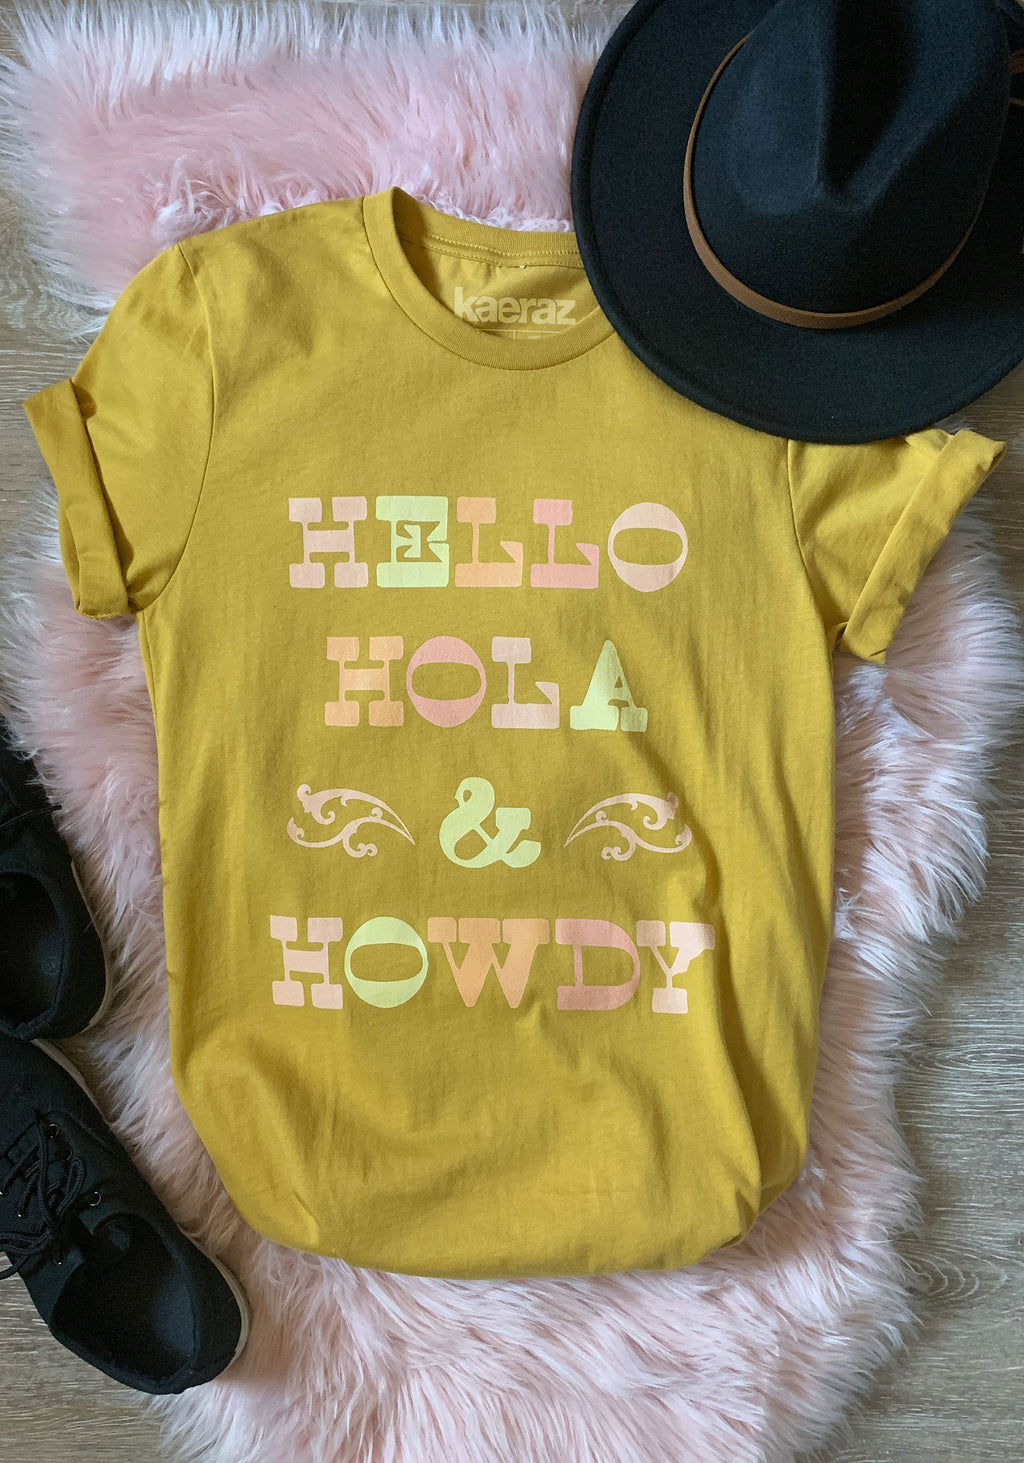 Cowgirl Greetings Tee / womens graphic tees / vintage style 70s southwest t shirt / hola howdy hello / west gifts souvenir t-shirt